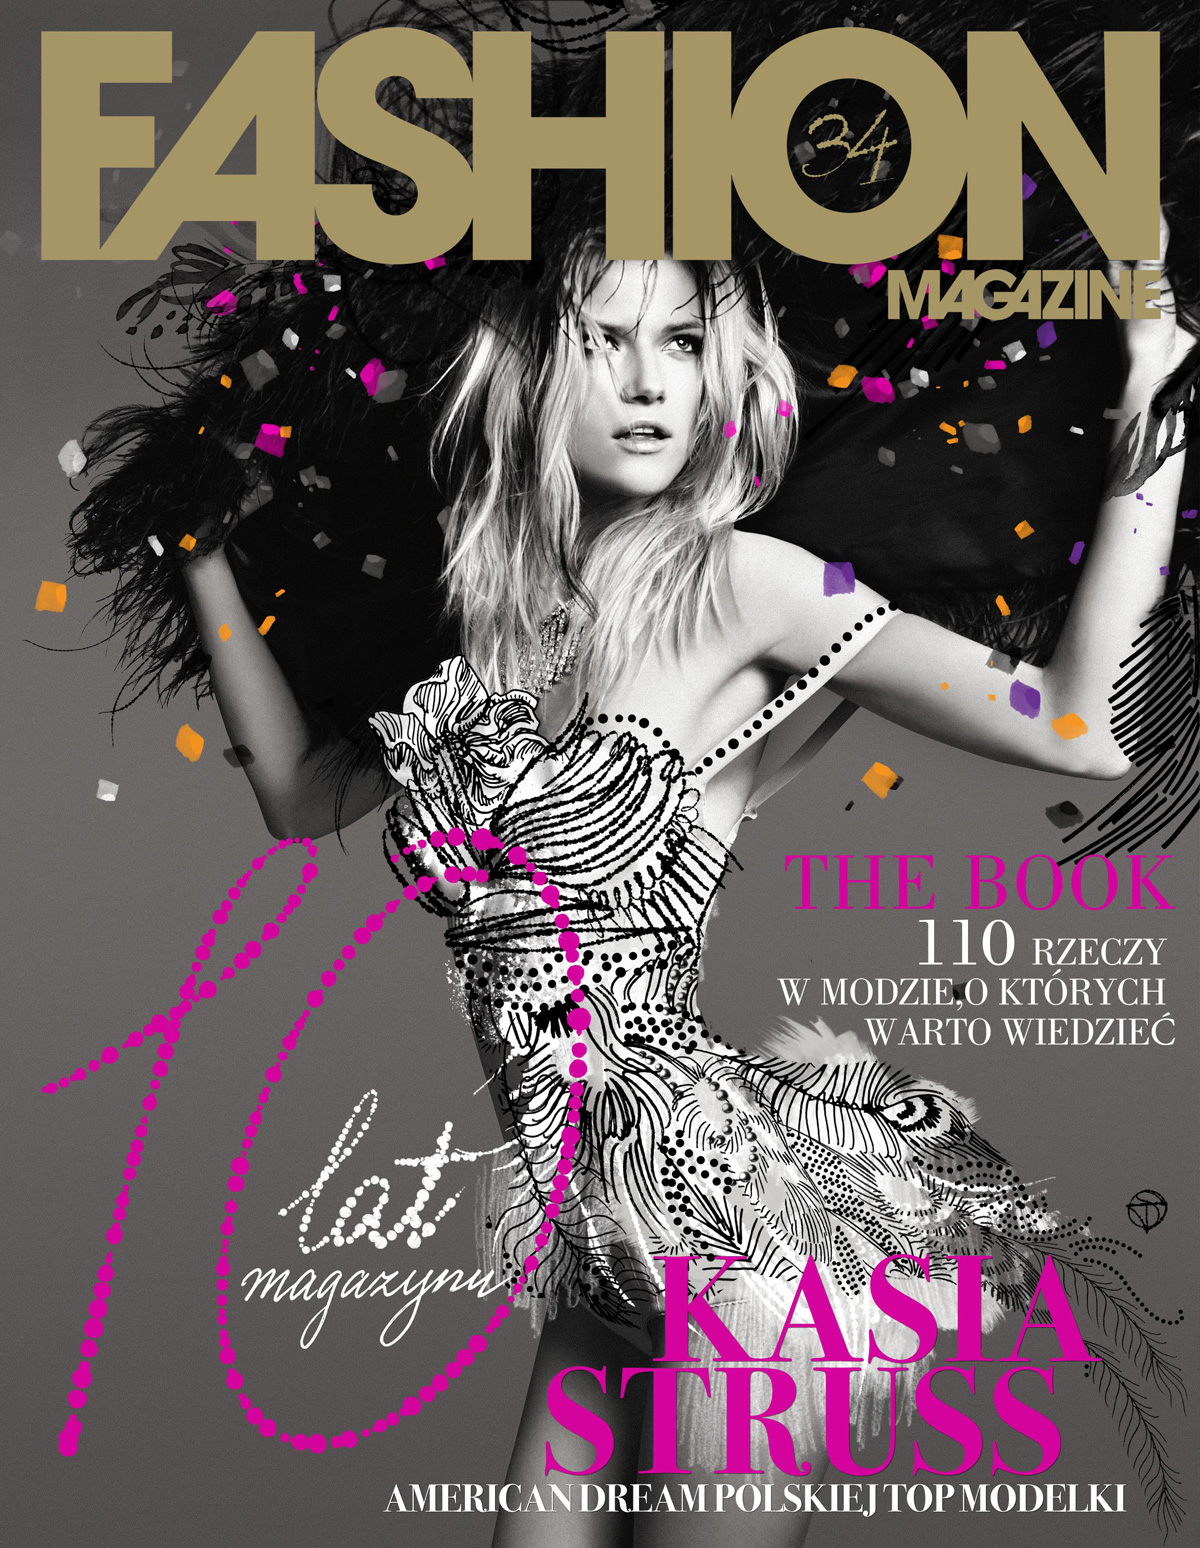 Fashion Magazines Nyc: Exclusive: Kassia Struss For Fashion Magazine's 10th